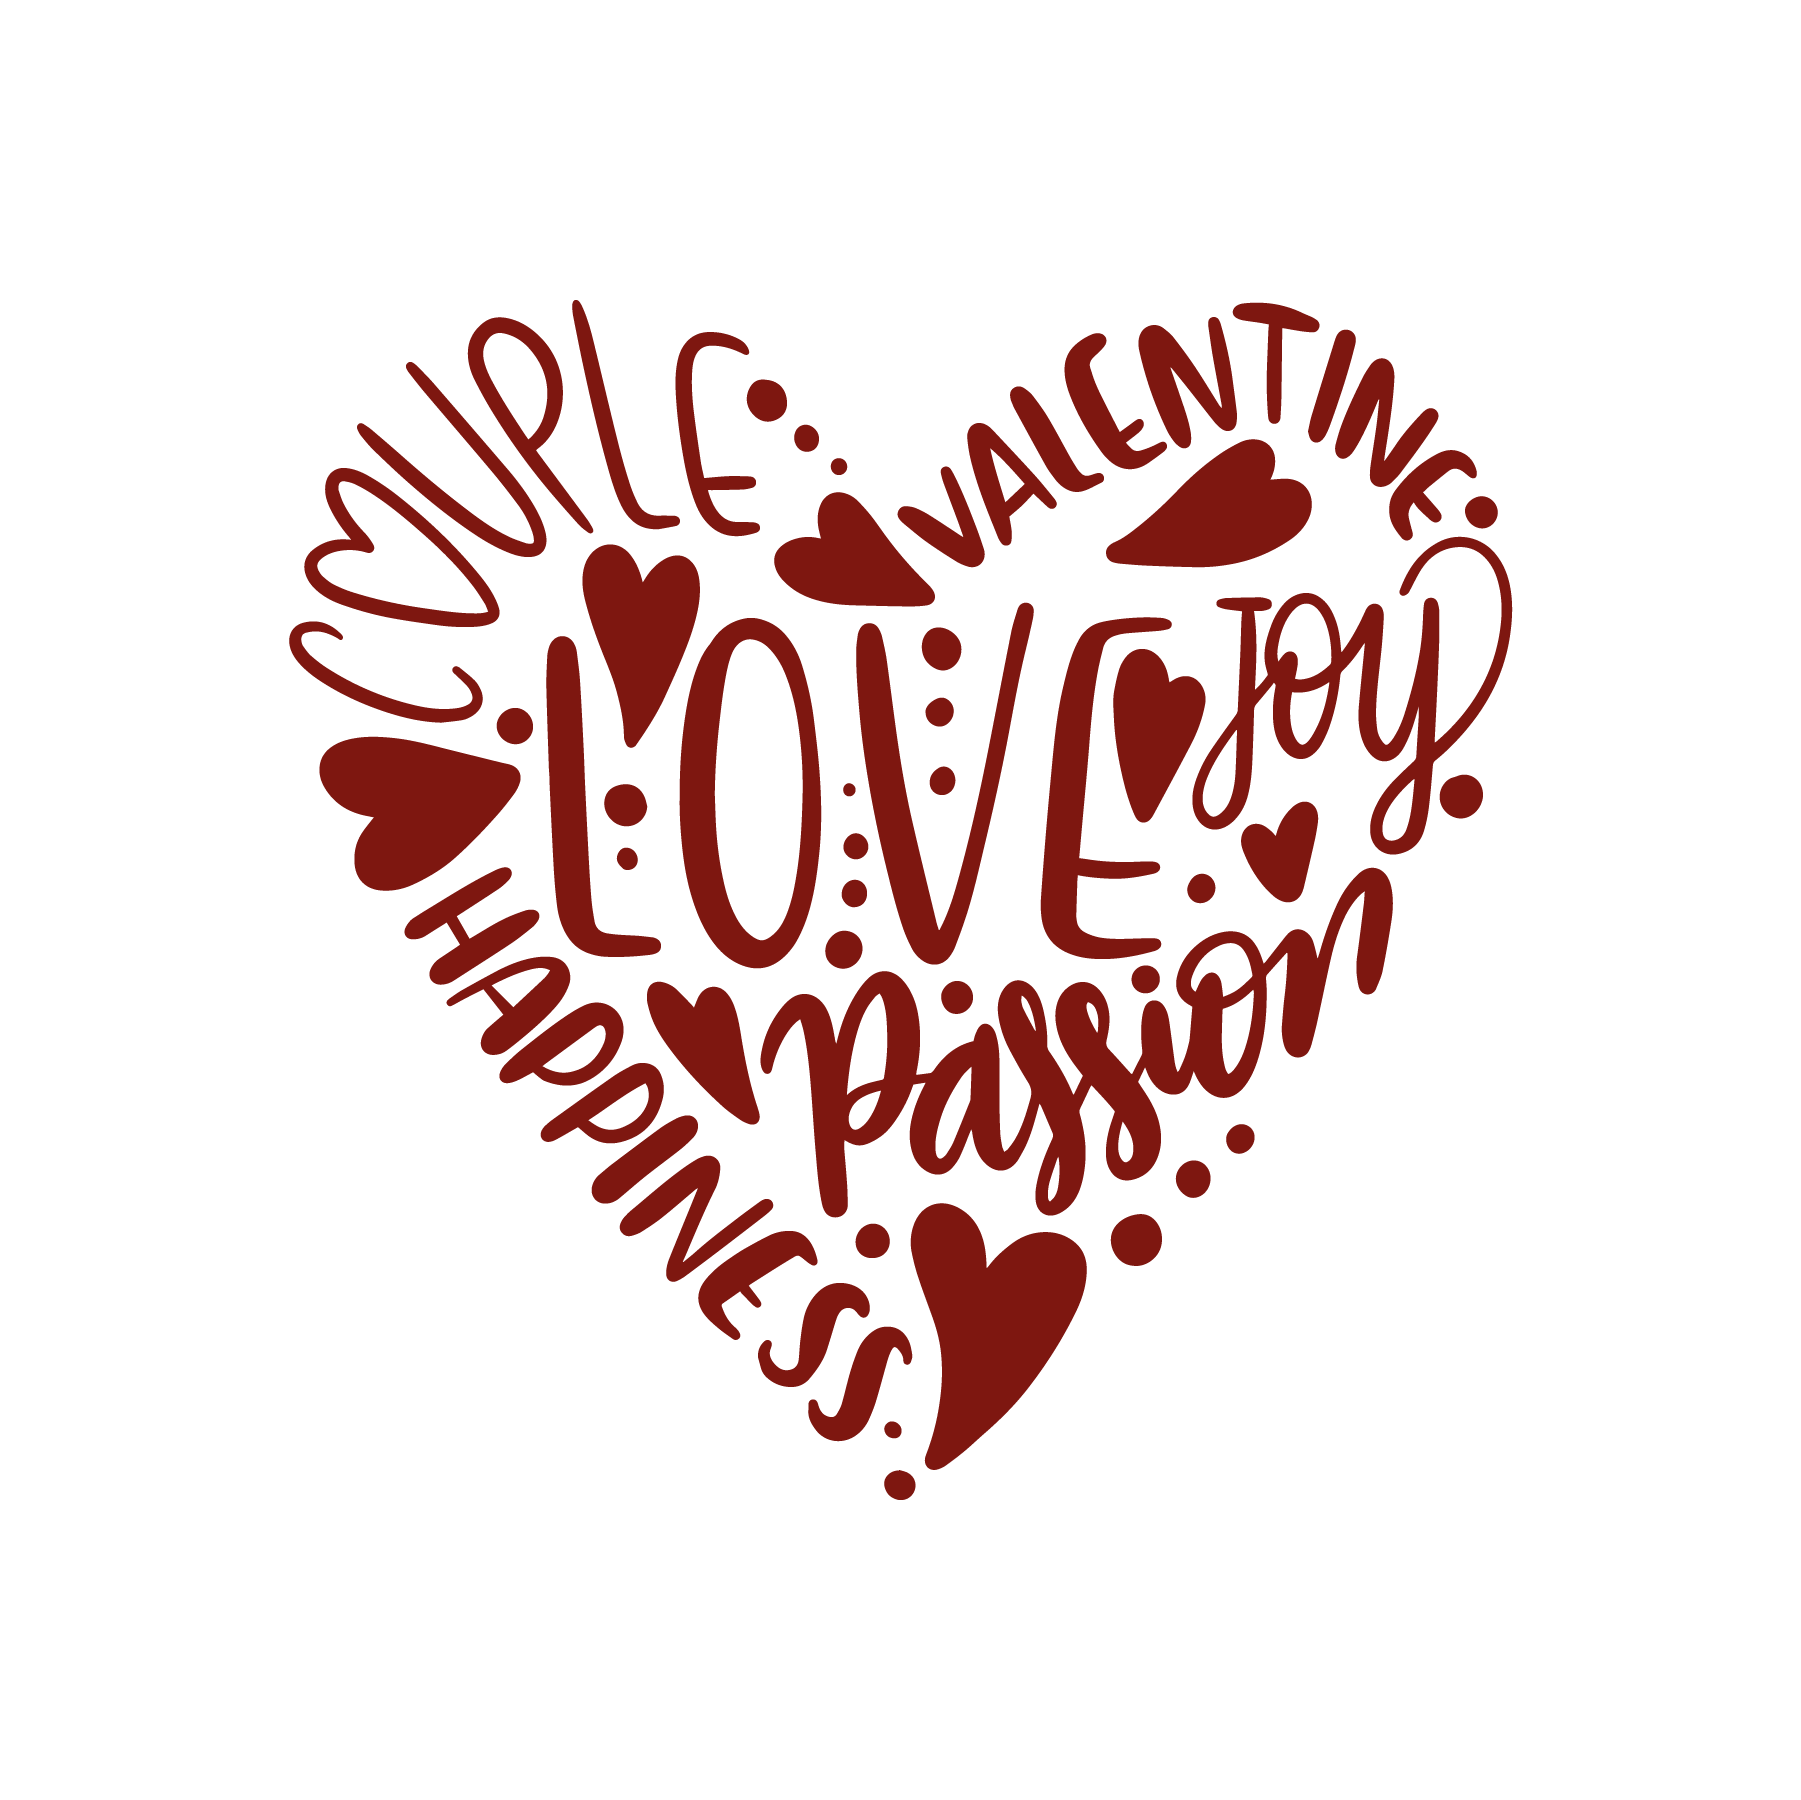 Download Heart_words_COMMERCIAL_USE_OK | Valentines svg, Silhouette ...